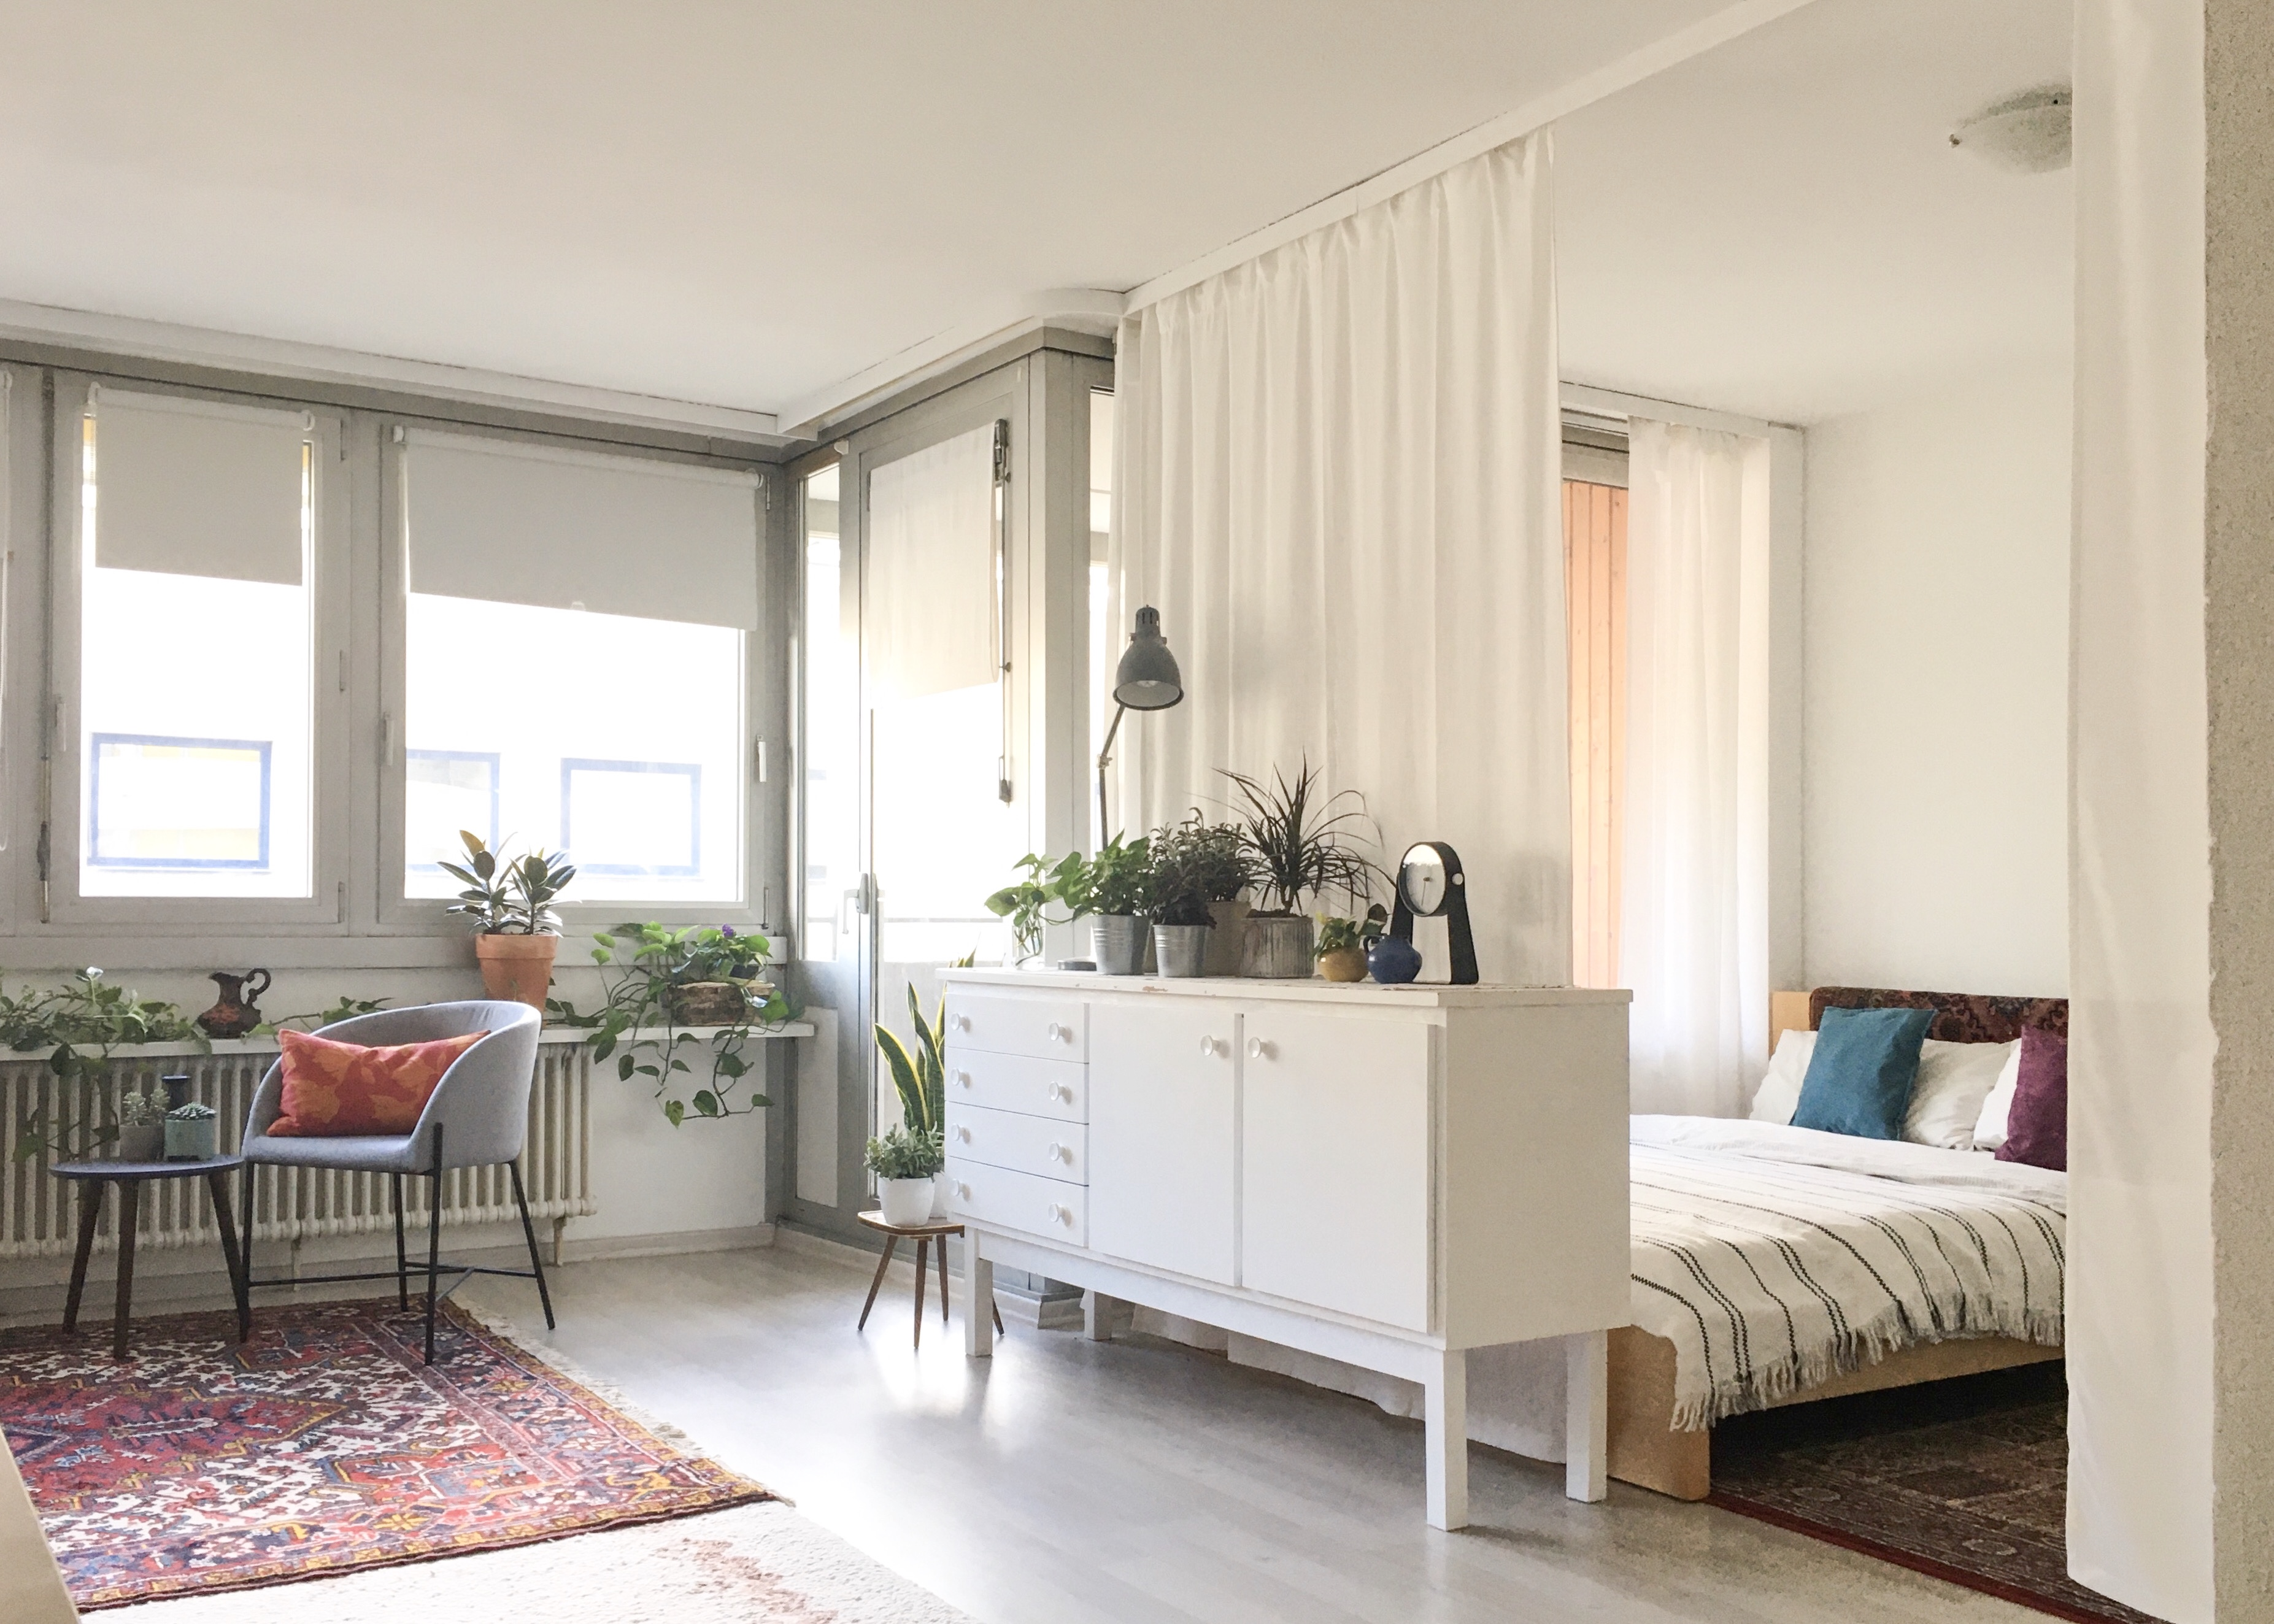 3 Ways to Divide a Room - Creative Small Room-Dividing Ideas